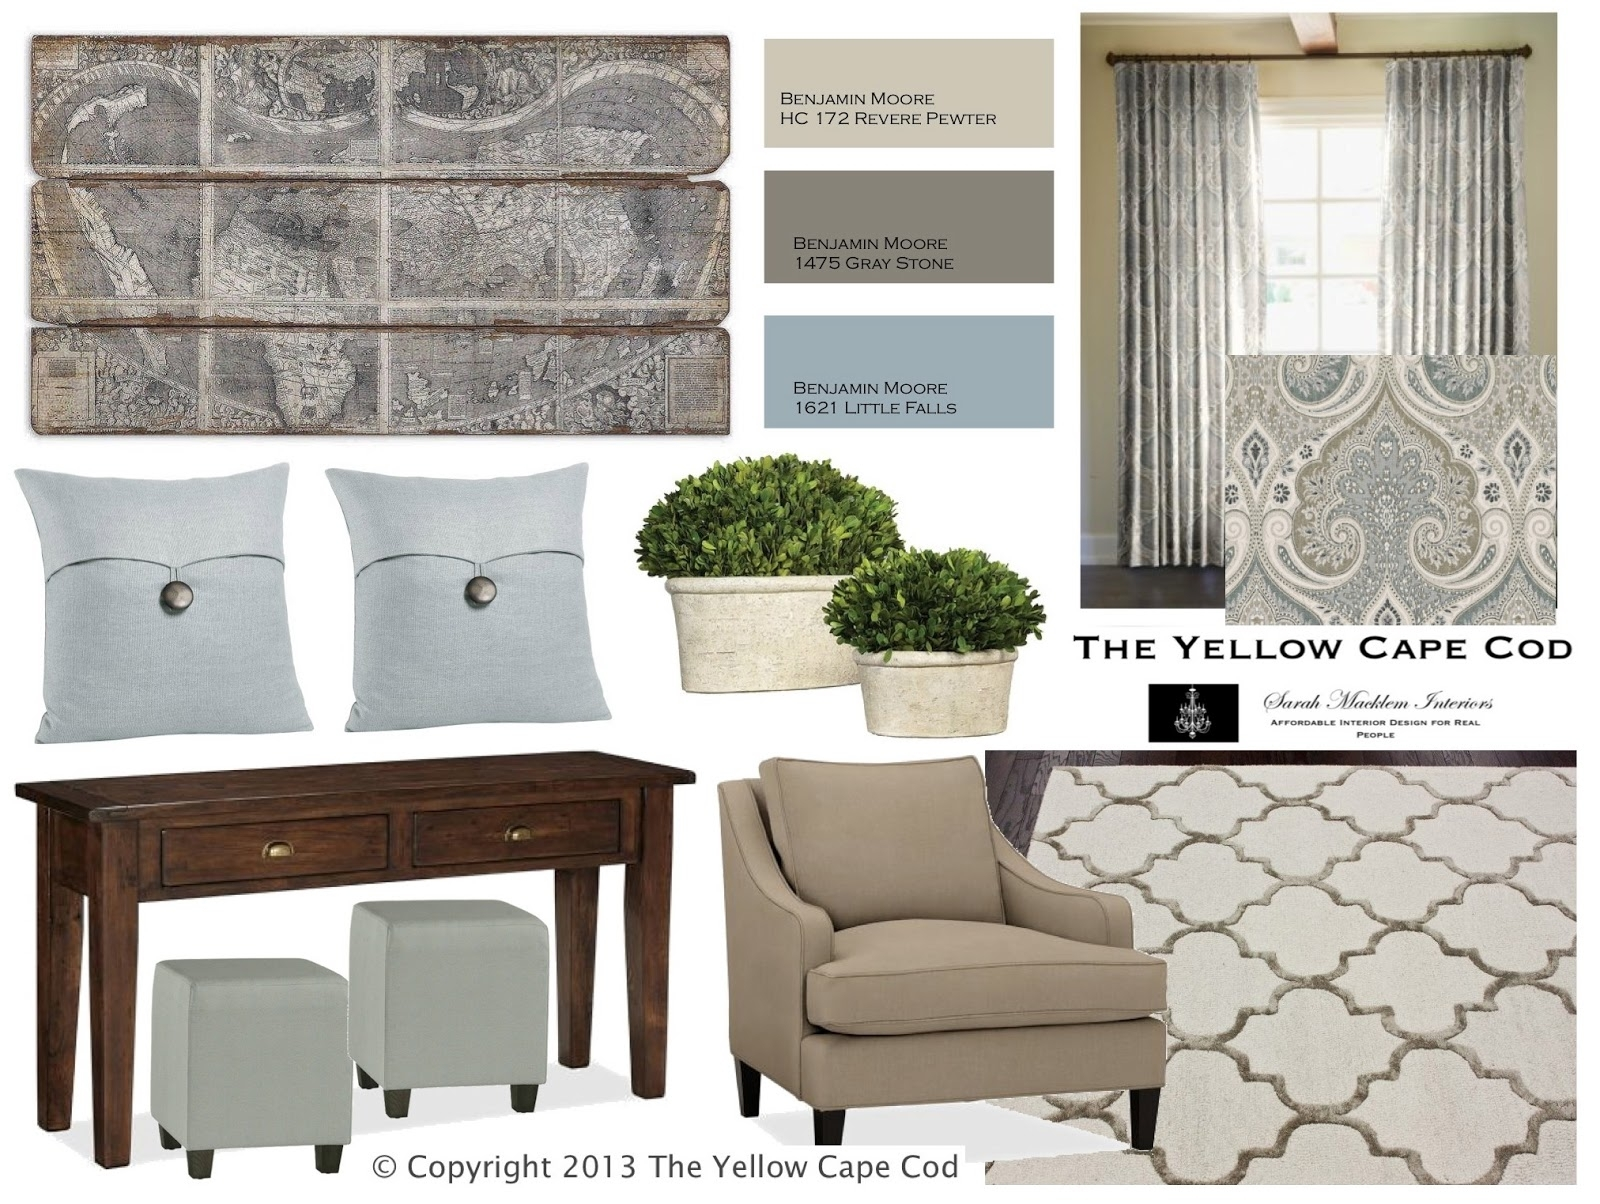 The Yellow Cape Cod| Revere Pewter With Light Blue Accents And Within 2018 Wall Accents For Revere Pewter (View 5 of 15)